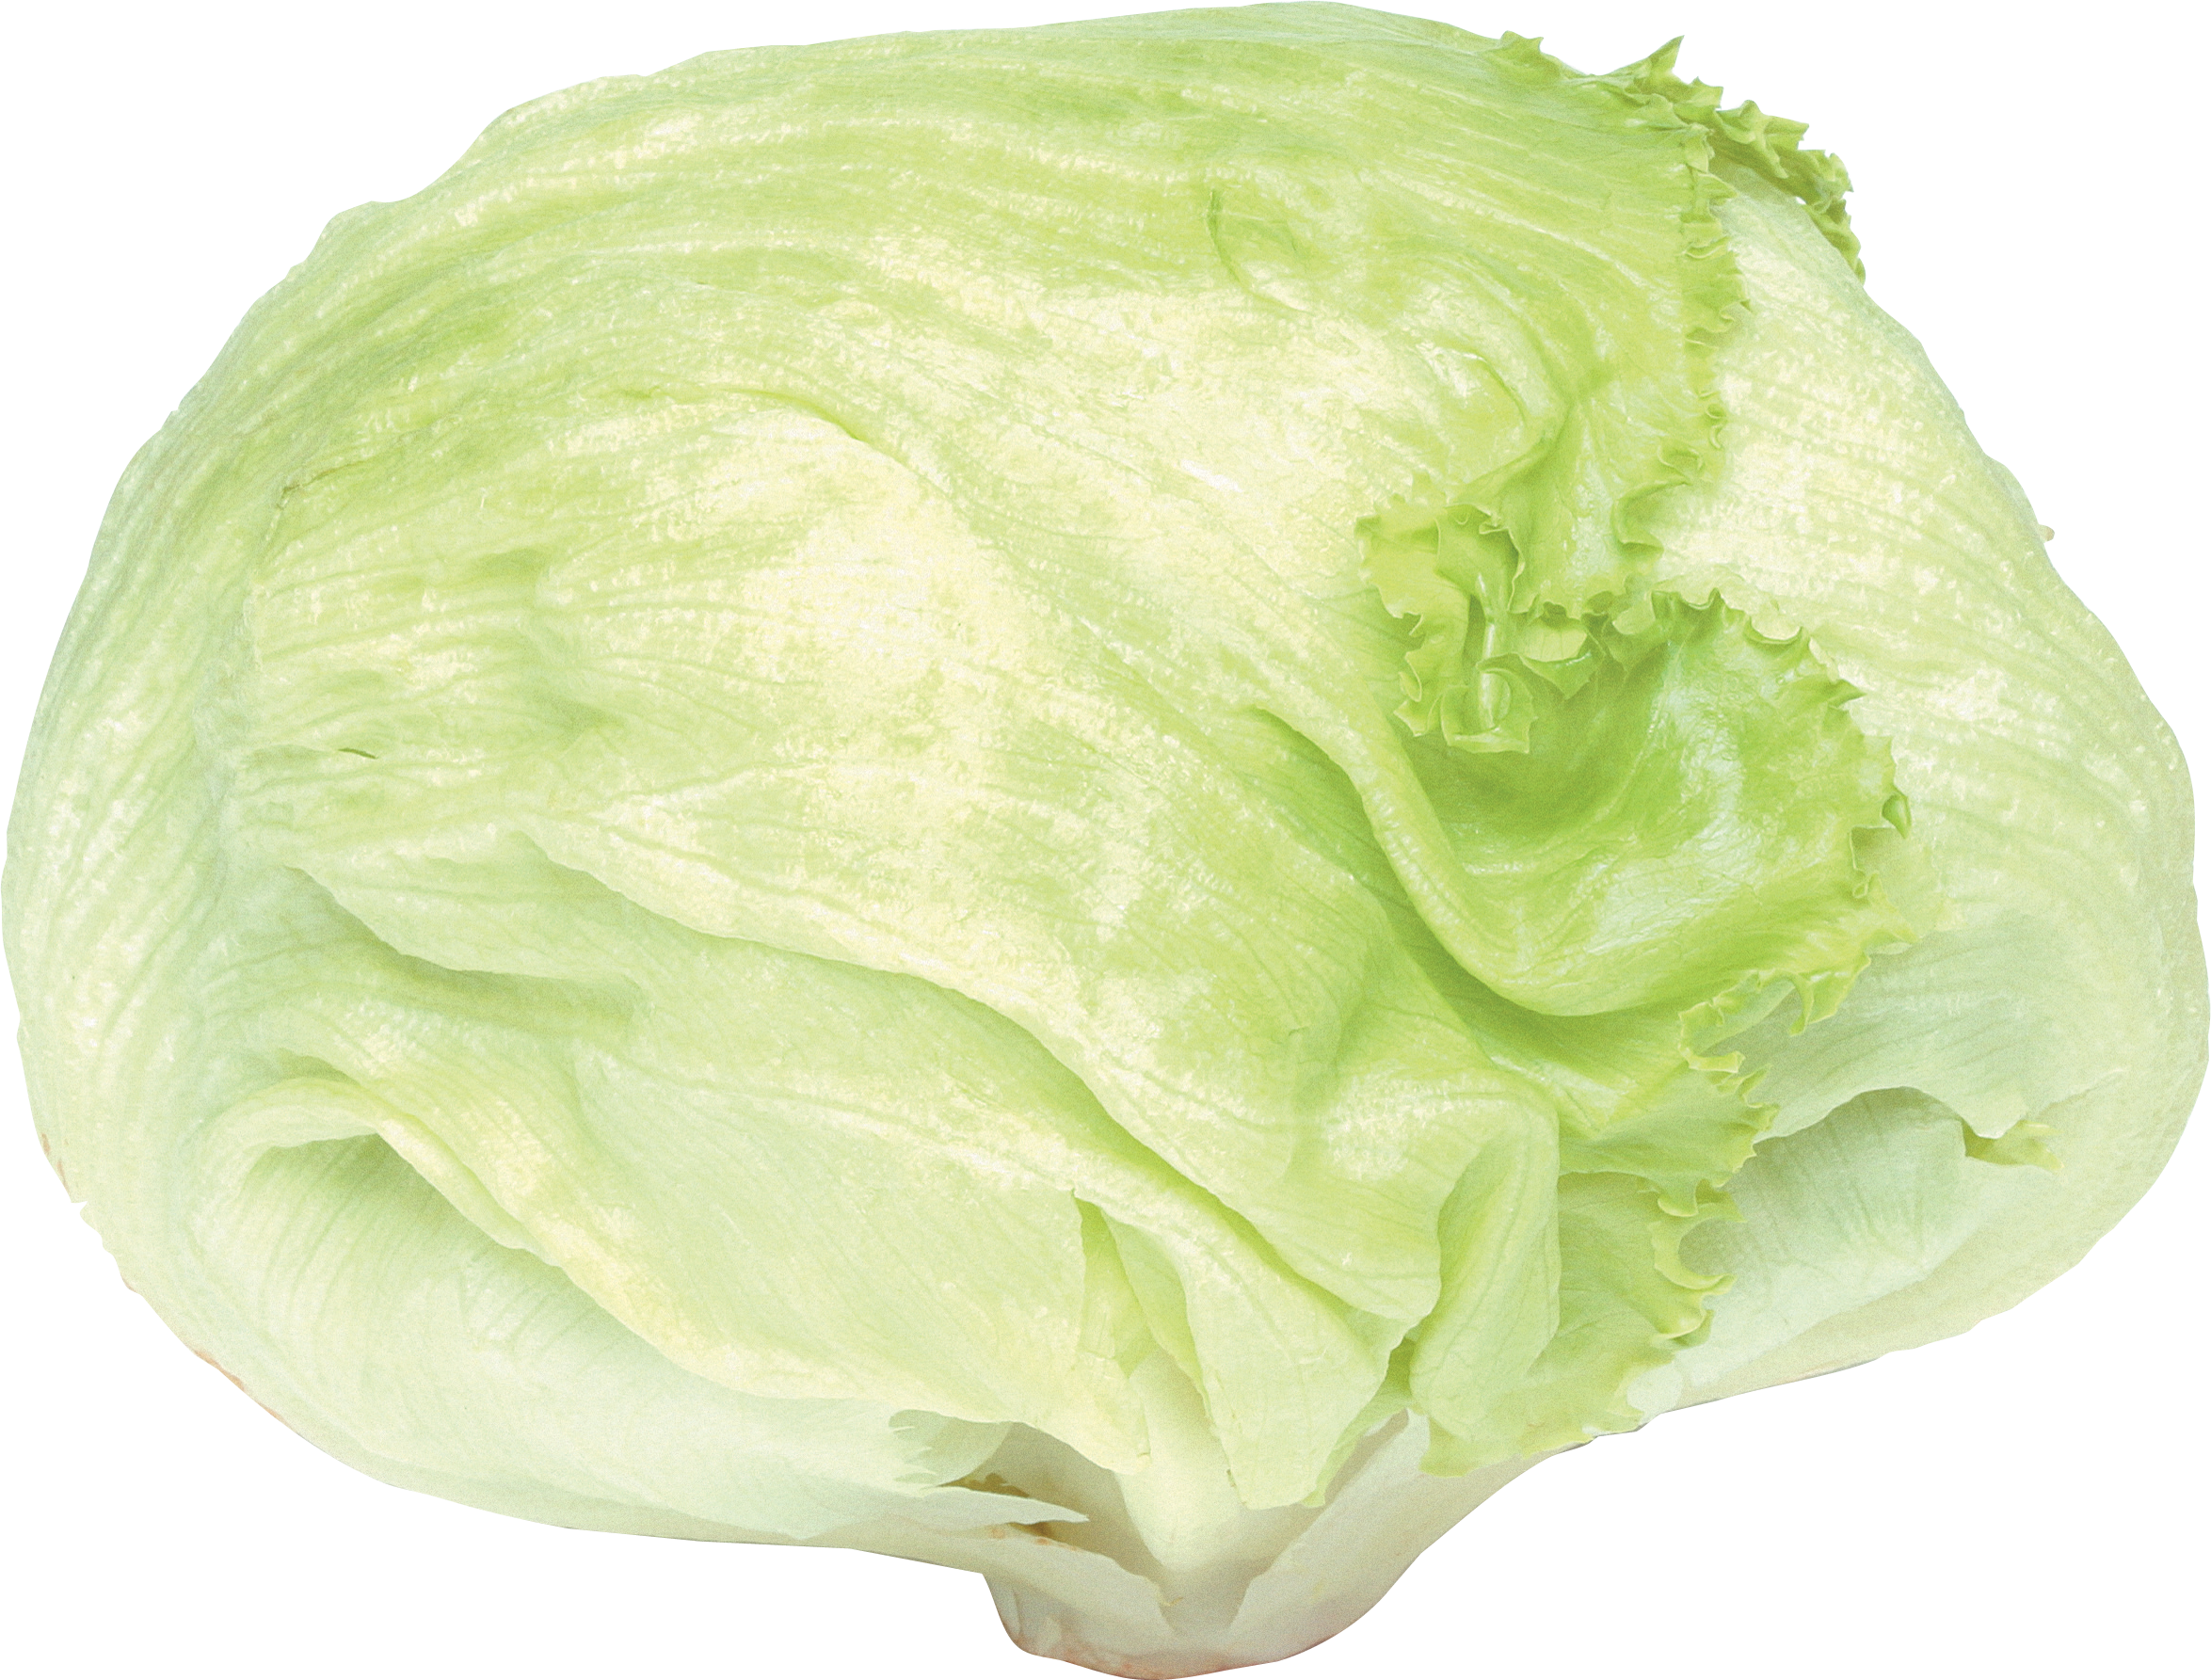 Cabbage plan view png. Vegetables plants